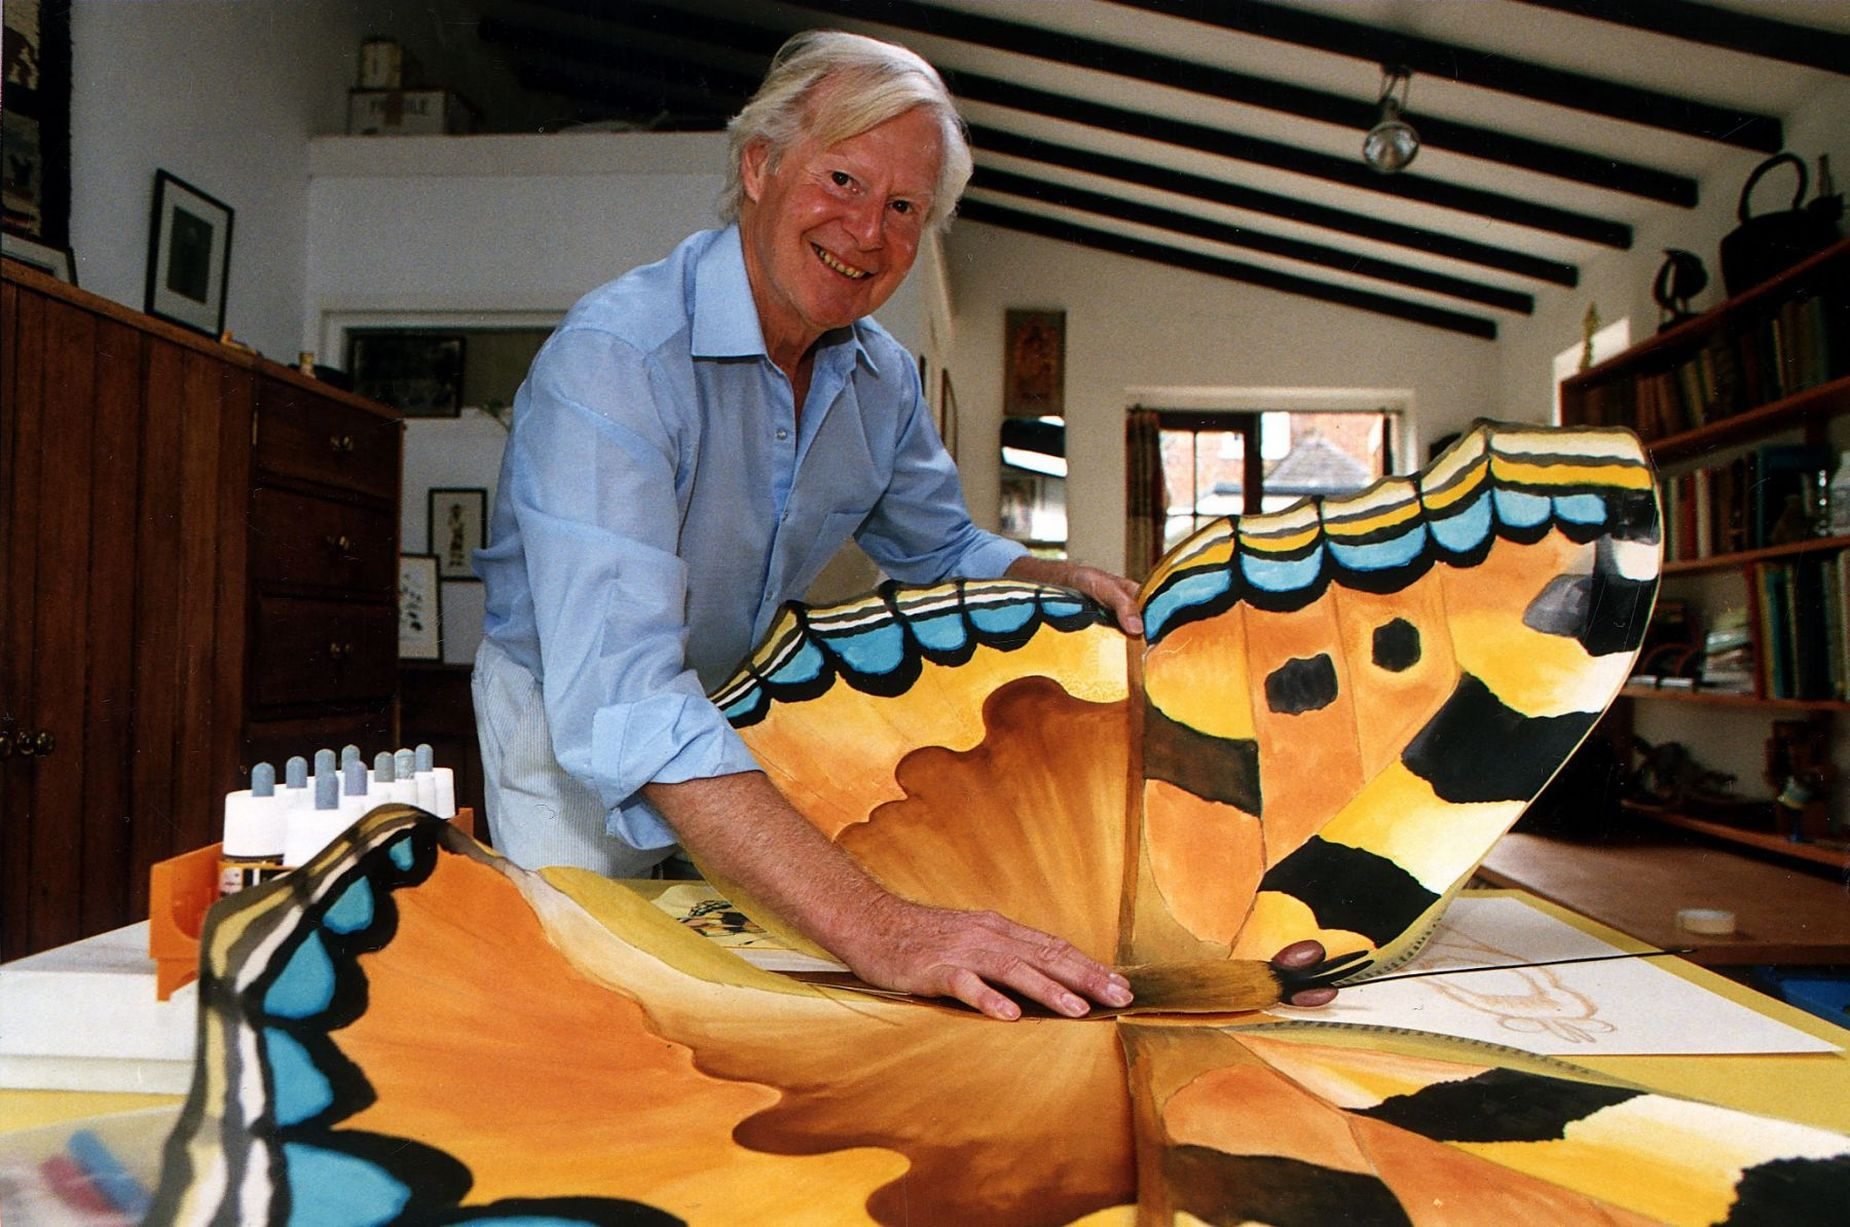 Tony Hart inspired a generation to pick up a paint brush